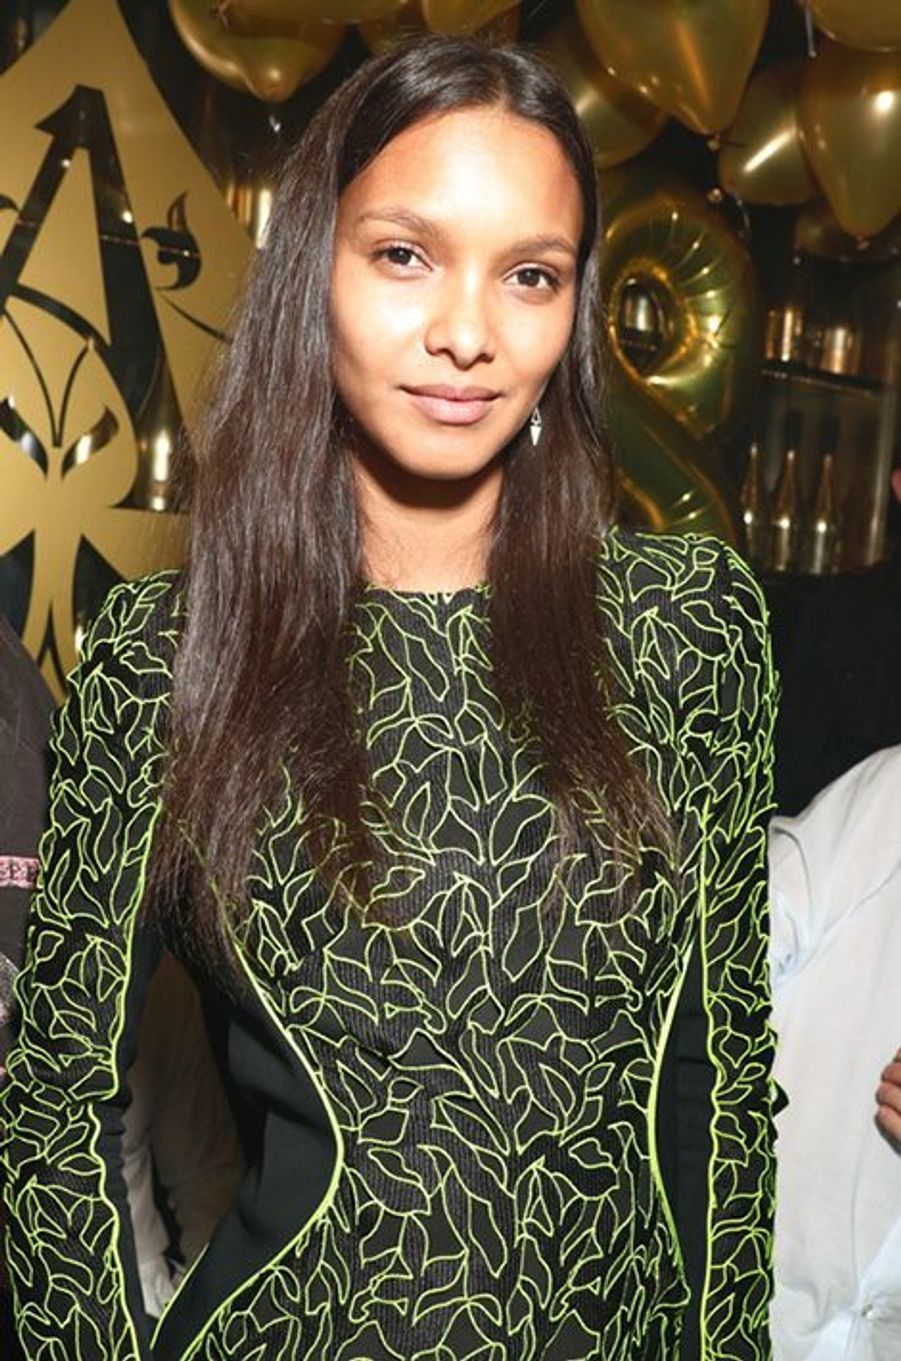 Joan Smalls à l'Arc lors de la Fashion Week parisienne.